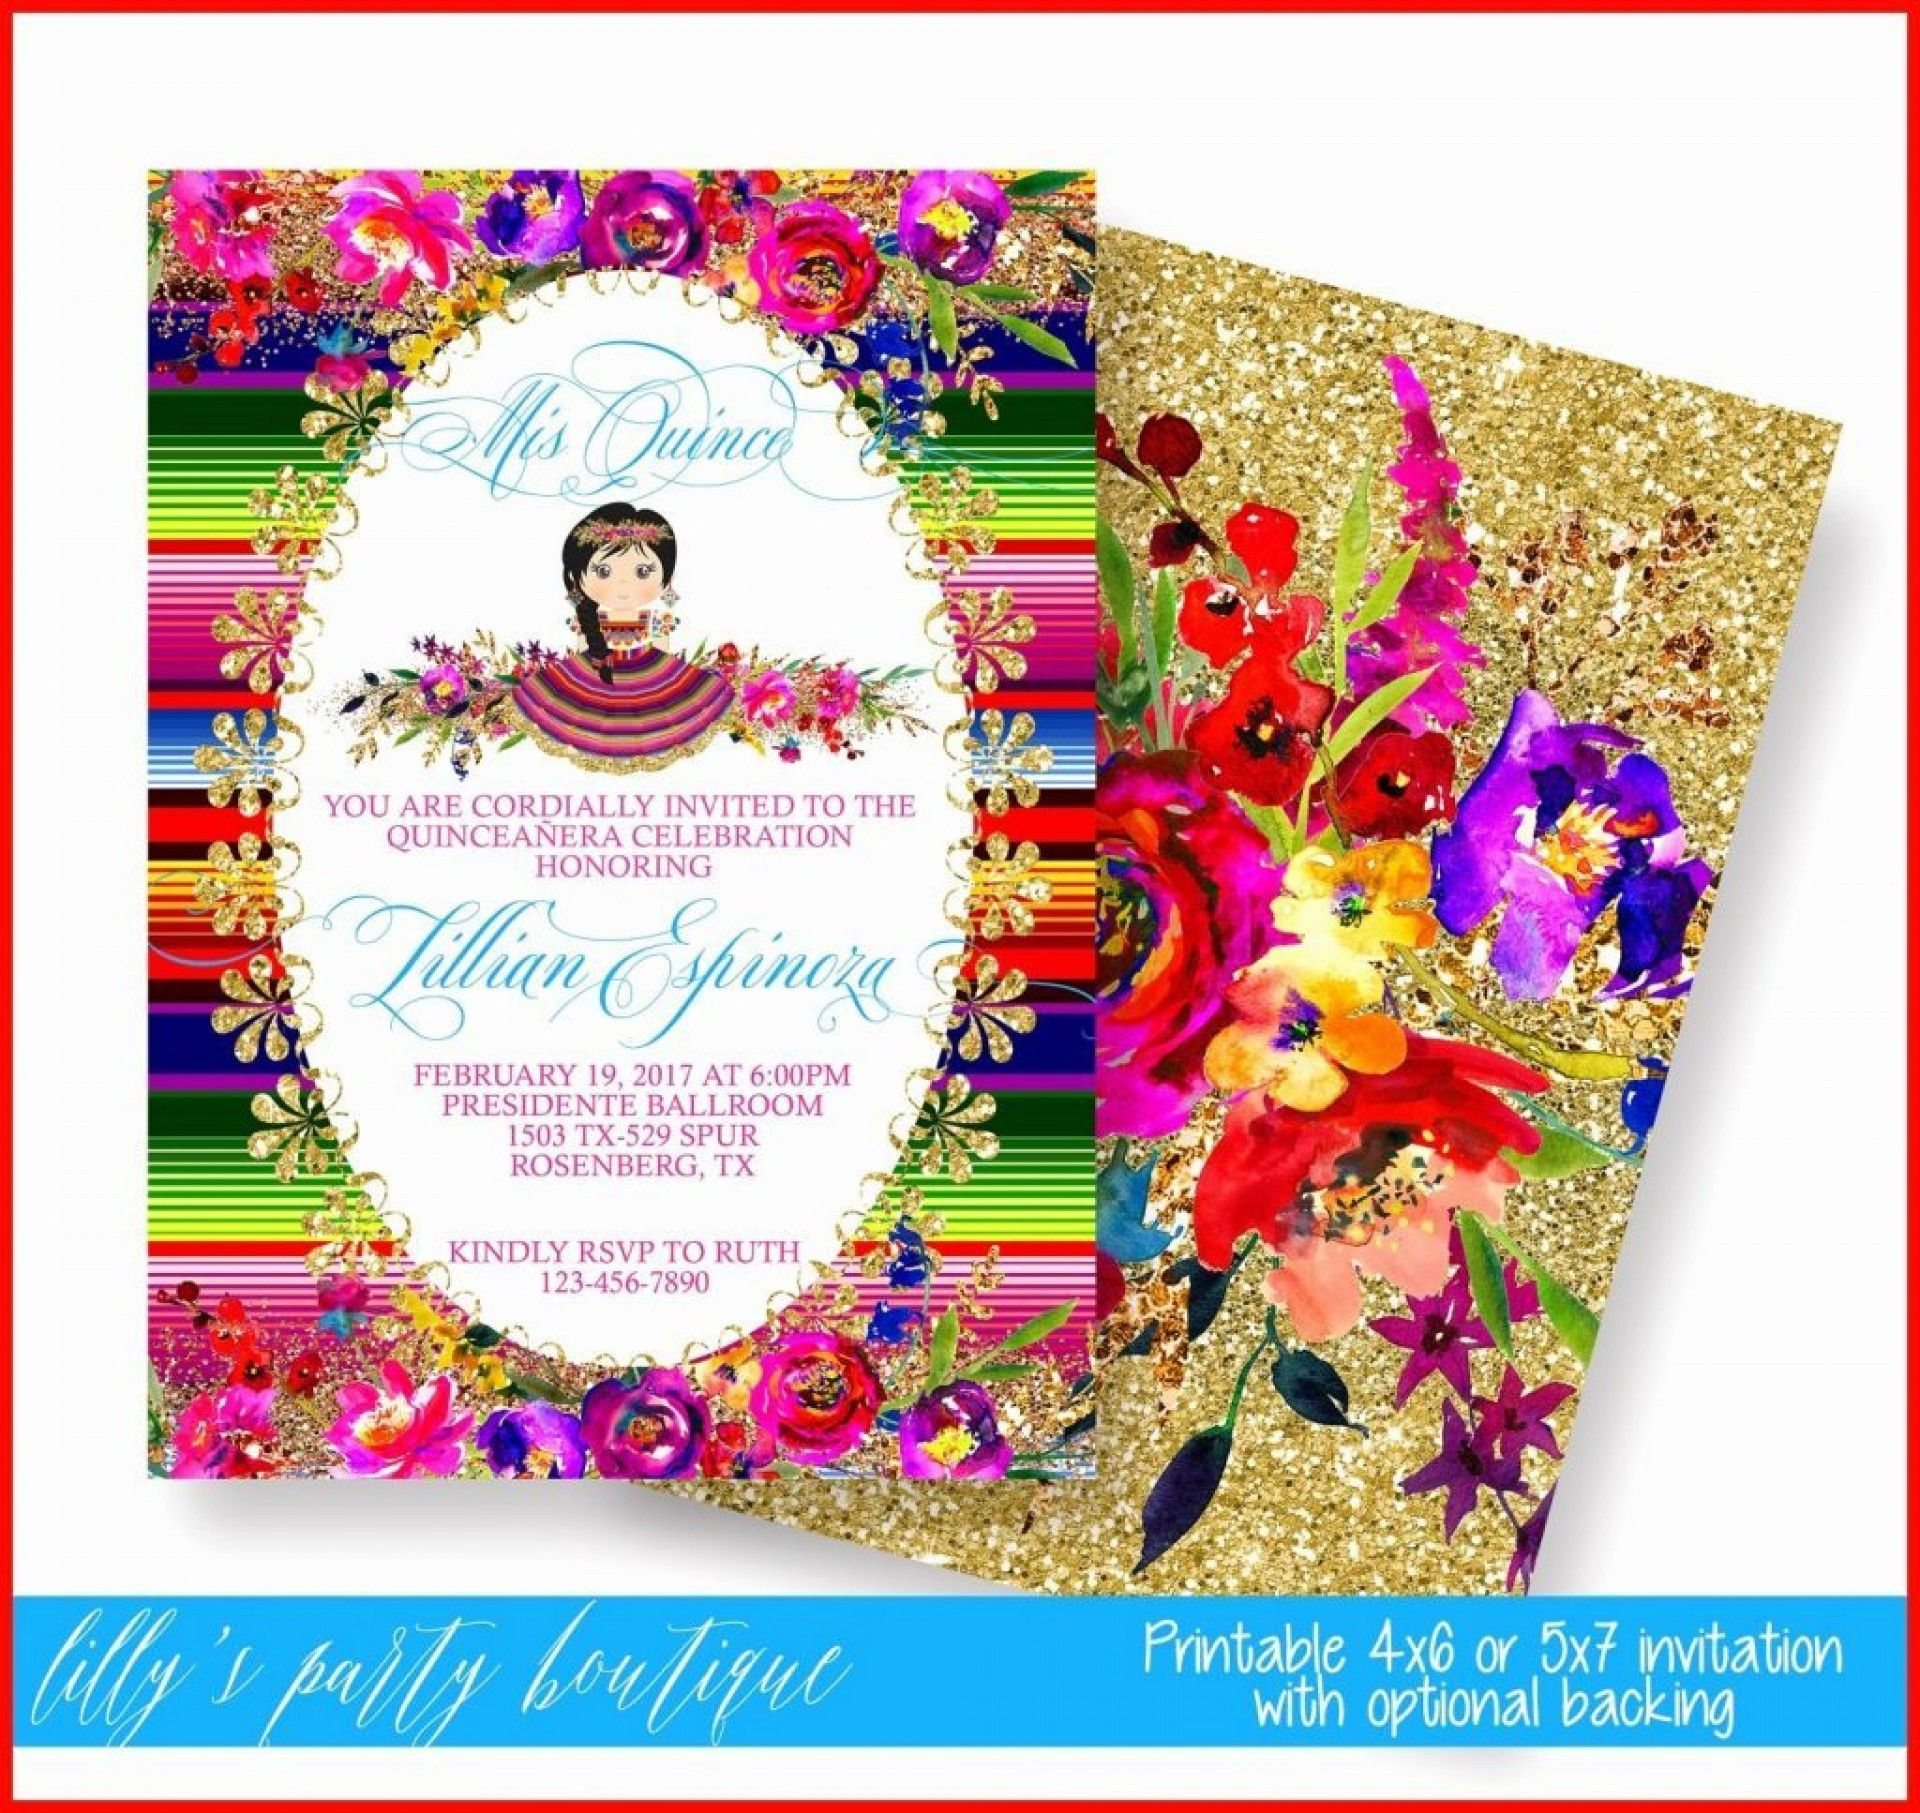 Mexican Party Invite Template Best Of 027 Template Ideas Fiesta Invitations Templates Free M In 2020 Mexican Invitations Mexican Party Invitation Party Invite Template